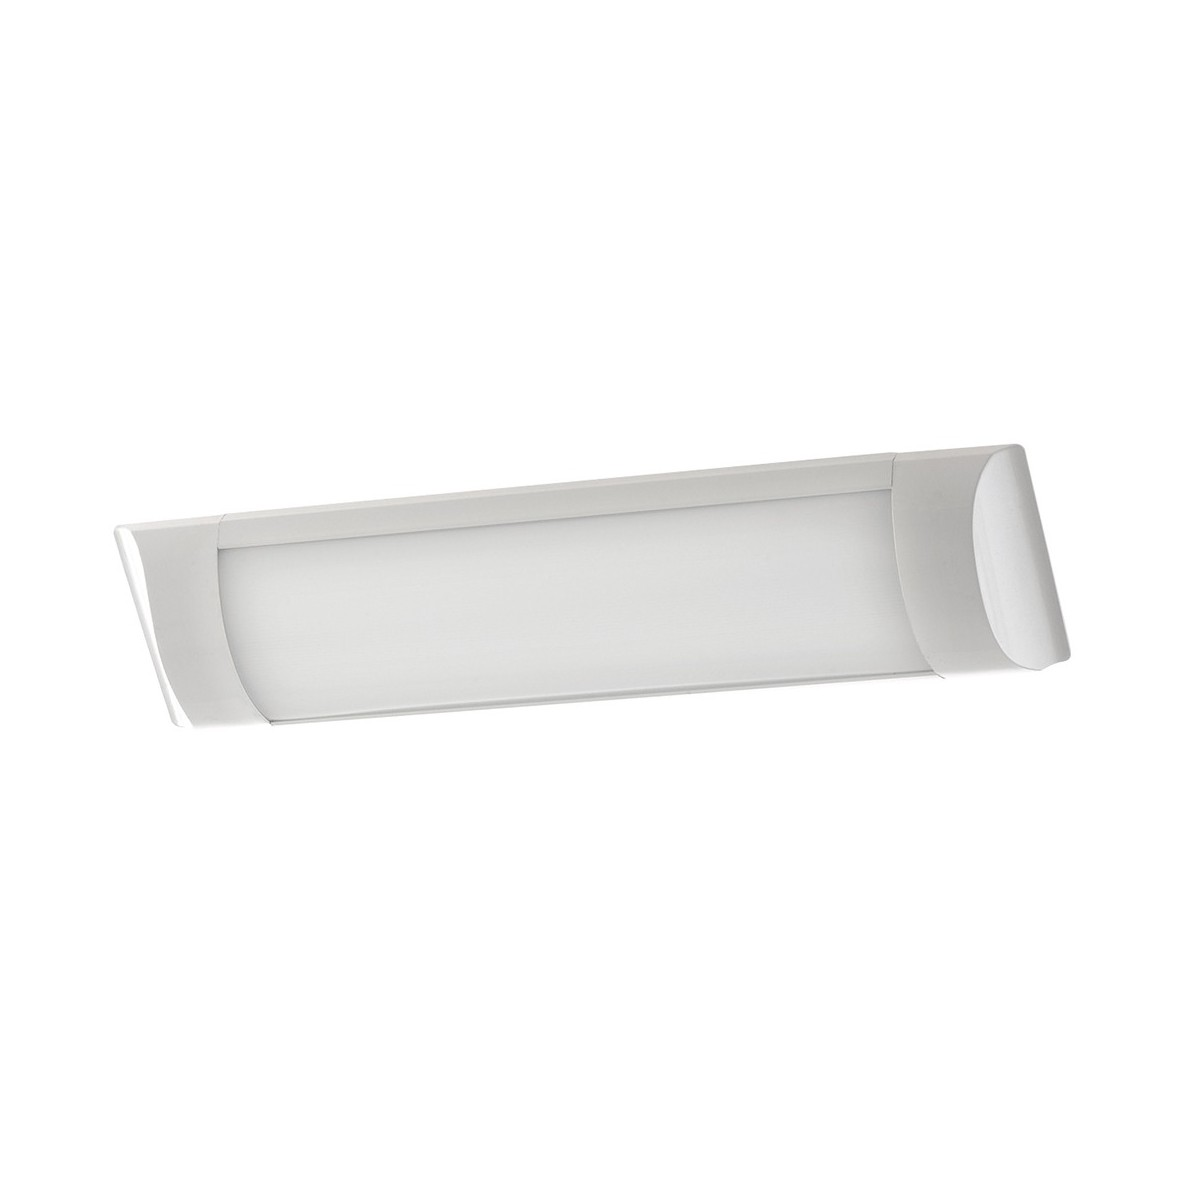 Applique Bianco Led  4000kelvin 18 watt